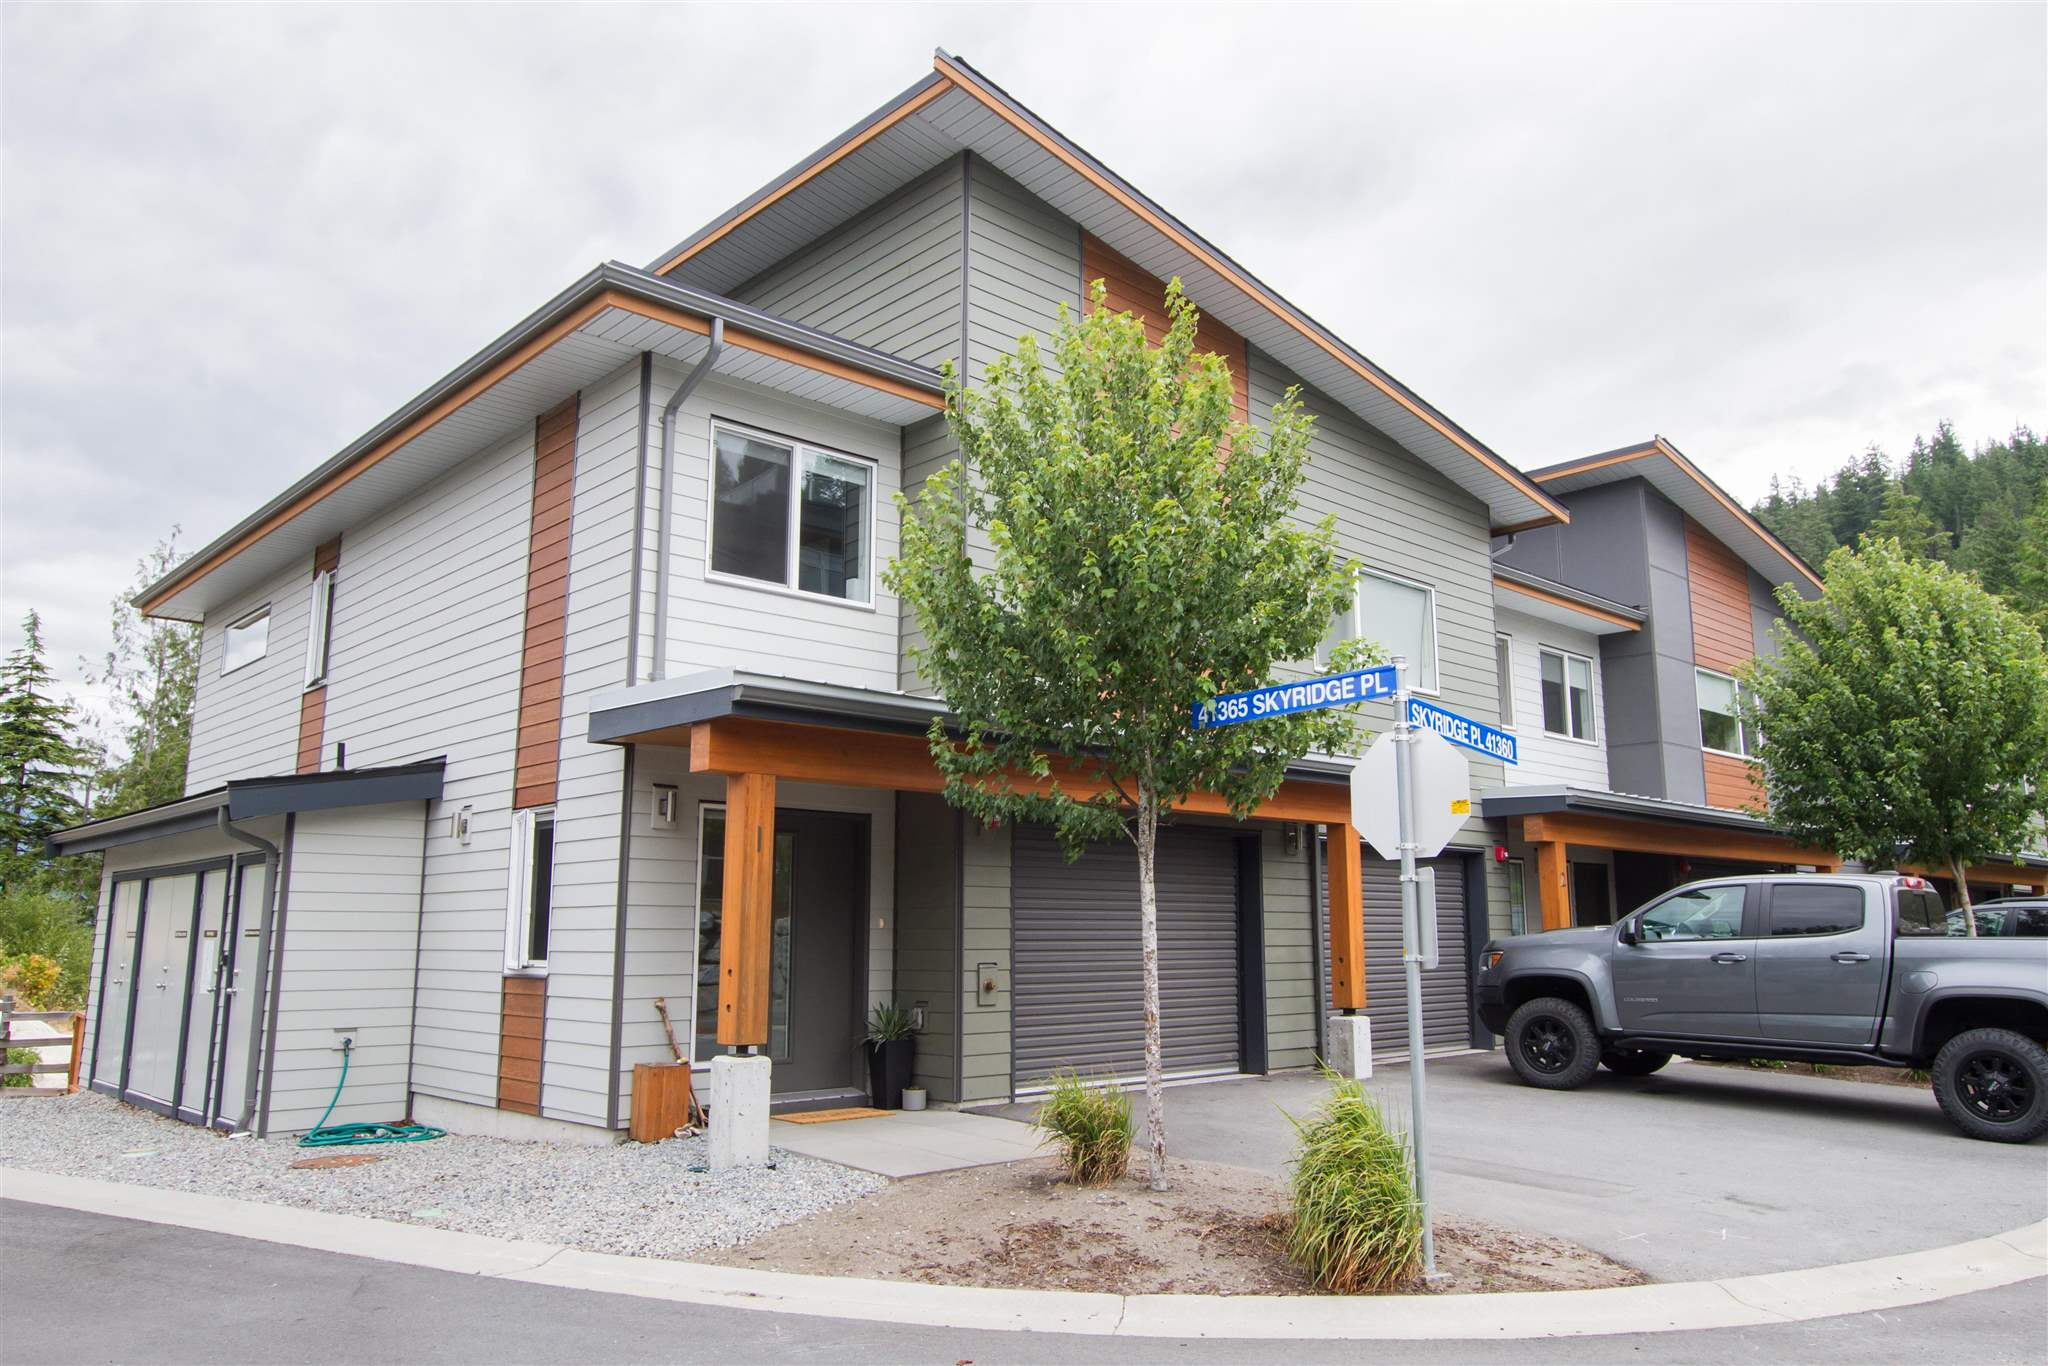 1 41360 SKYRIDGE PLACE - Tantalus Townhouse for sale, 3 Bedrooms (R2603273)